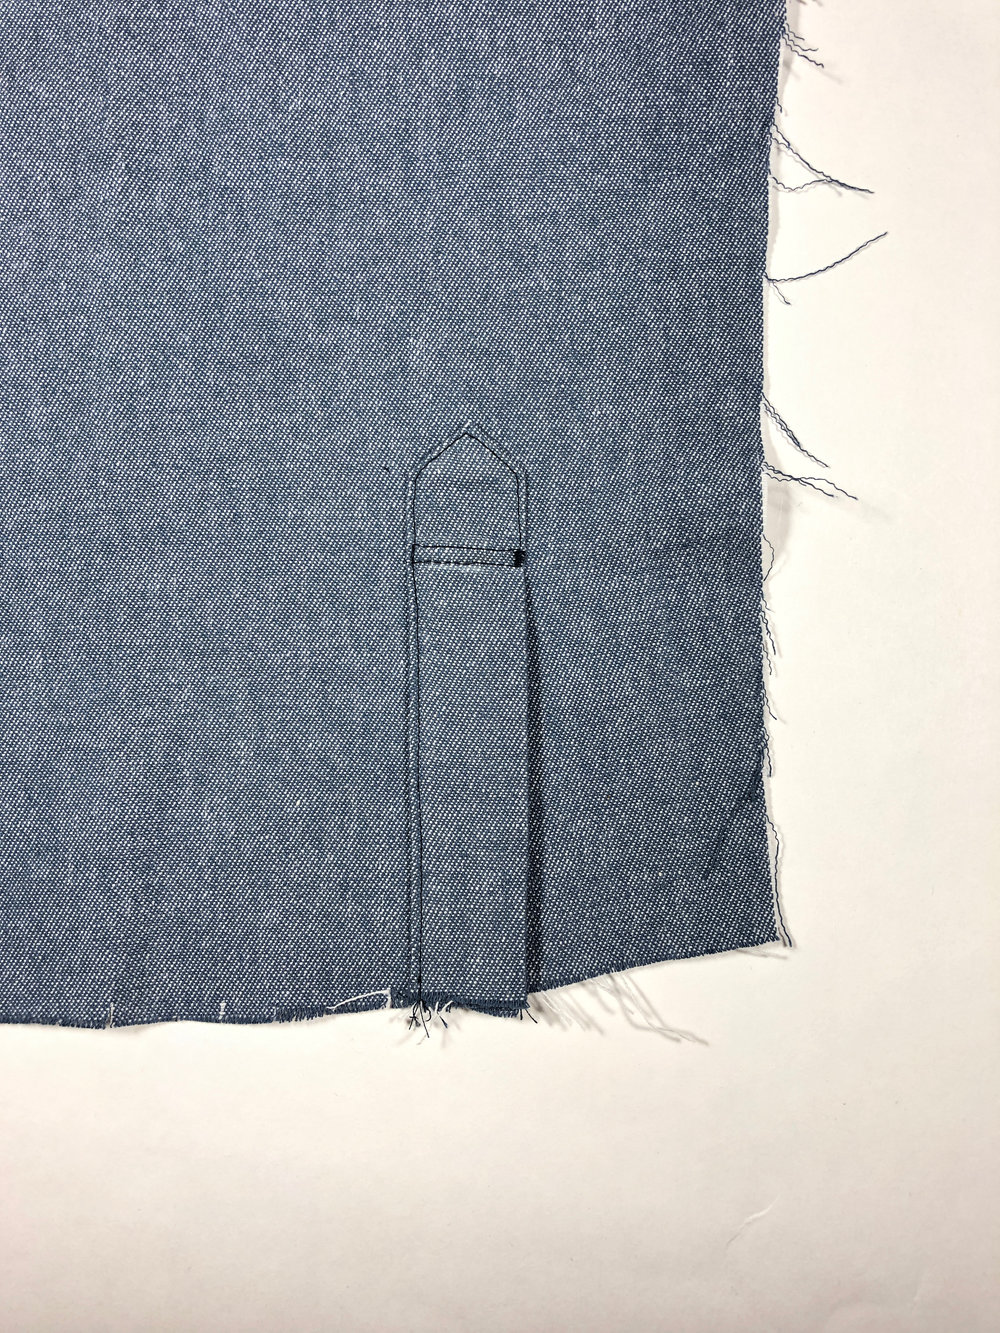 60. Edge stitch around the entire placket. Use the illustrated stitching guide below to help.